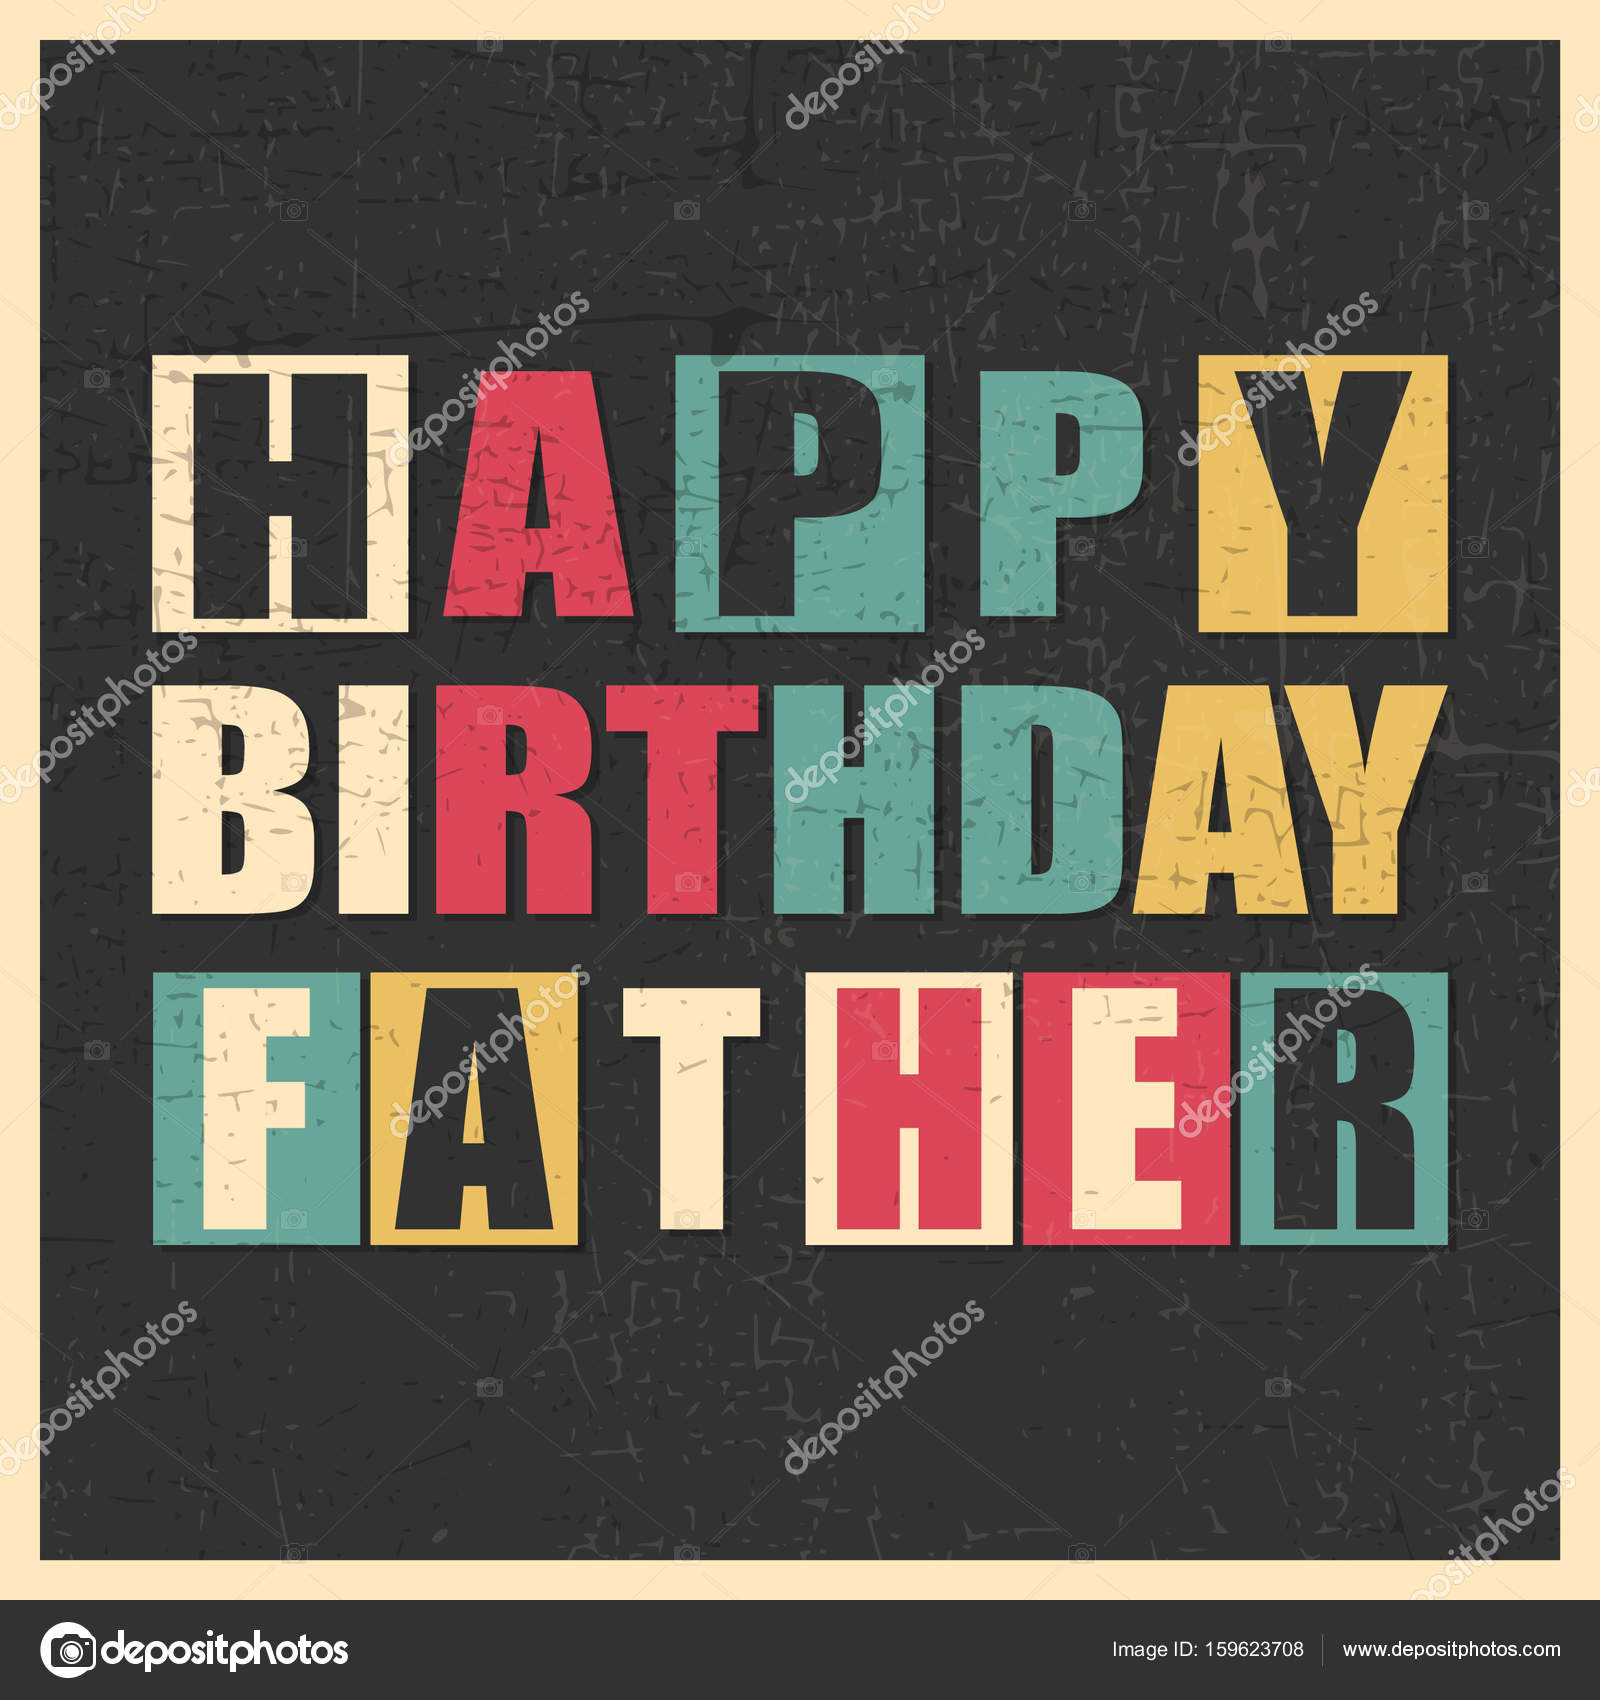 Happy Birthday Father On Black Background With Grunge Shapes